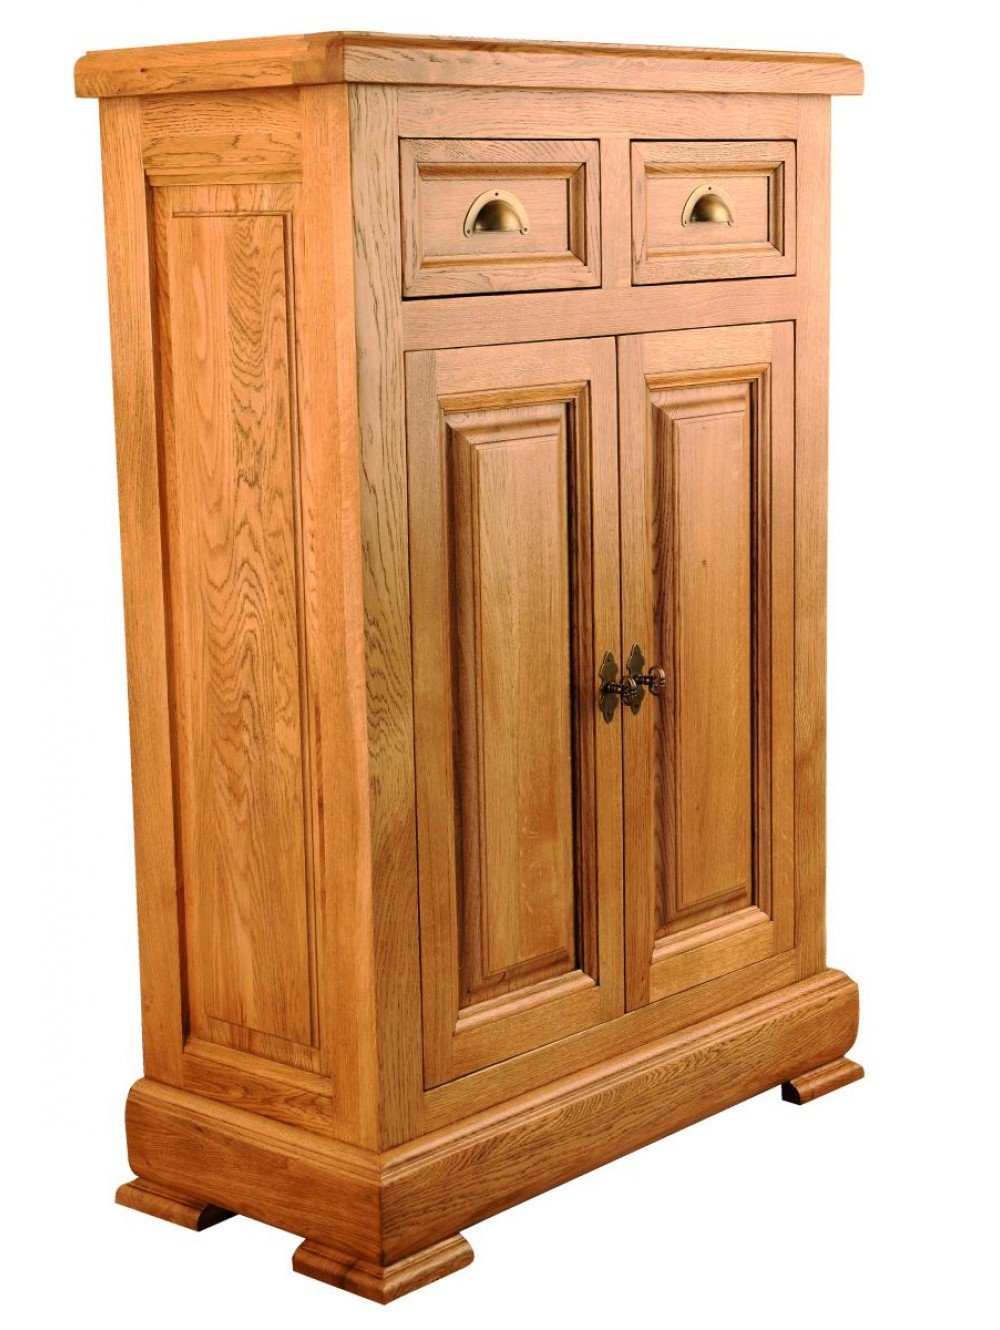 Low Hallway Cabinet with Solid Doors 511350